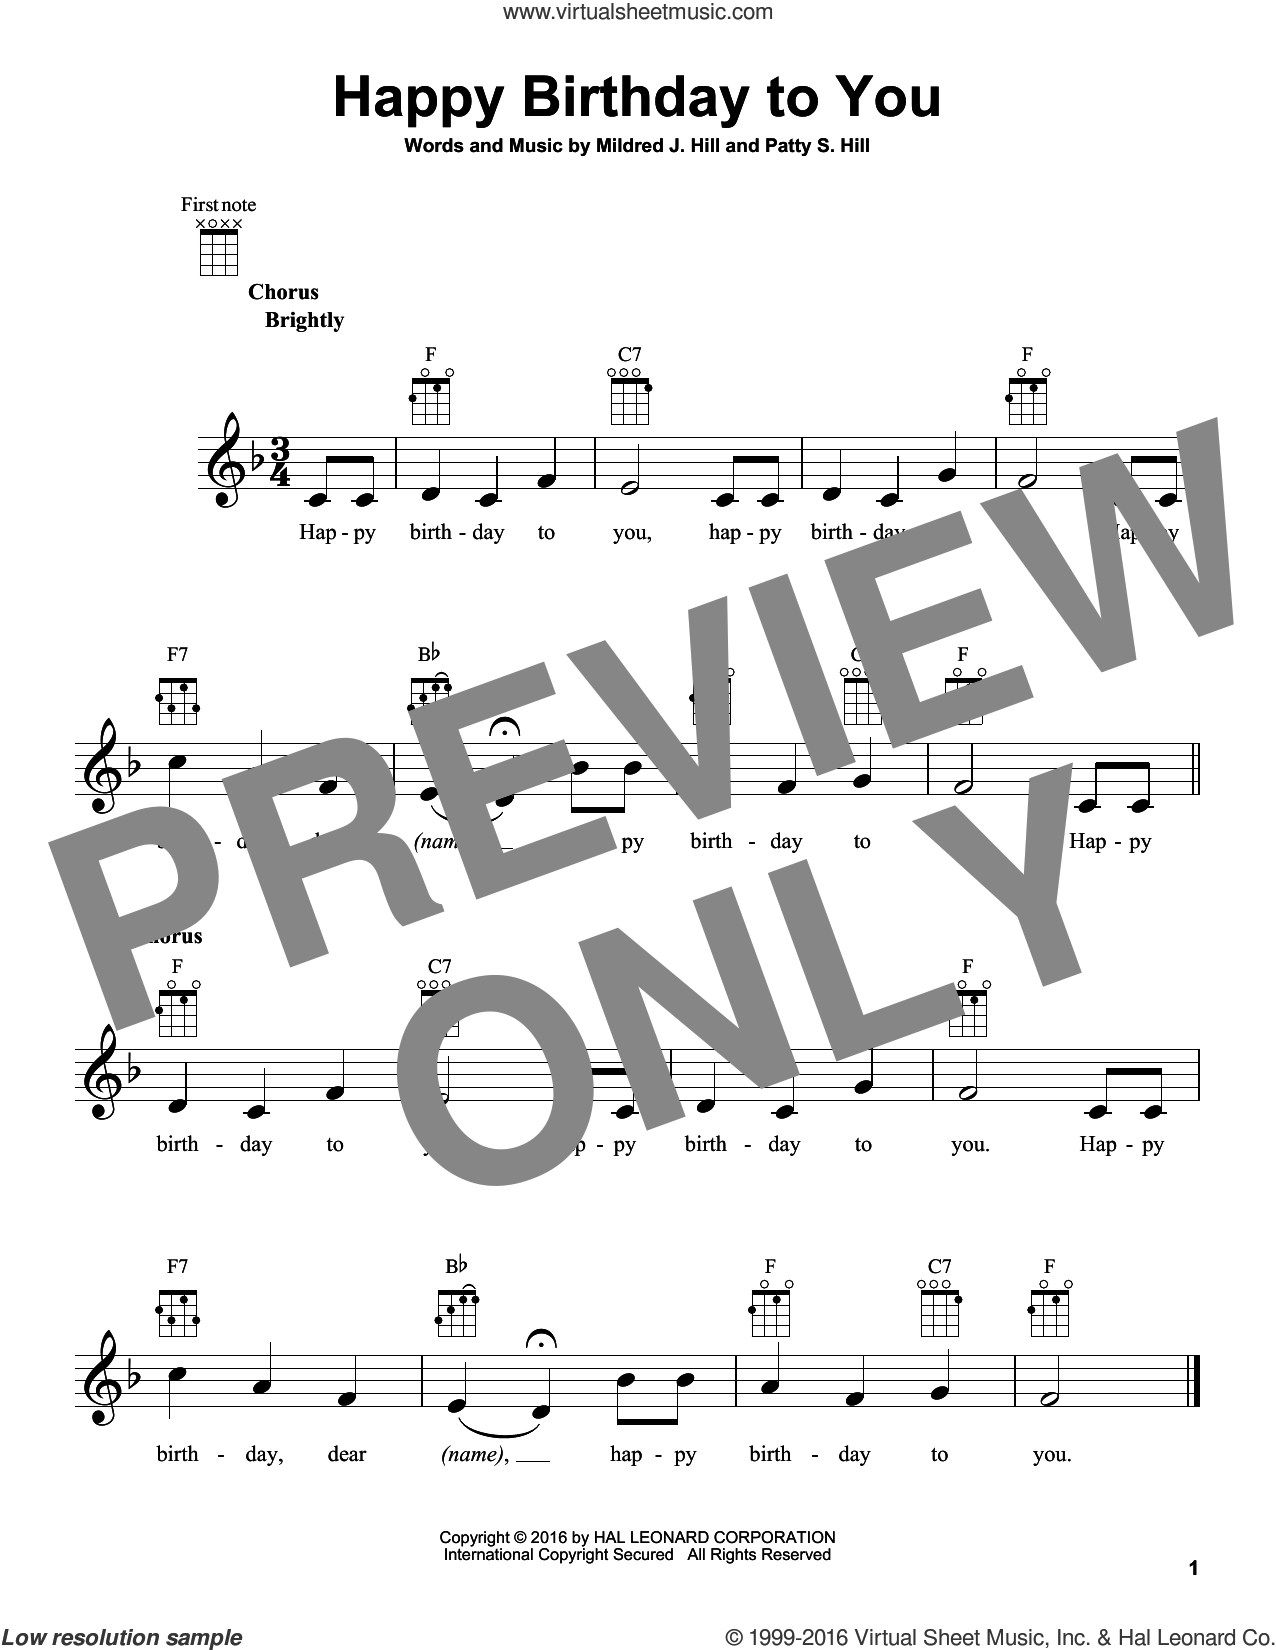 Happy Birthday To You sheet music for ukulele by Patty Smith Hill and Mildred J. Hill. Score Image Preview.